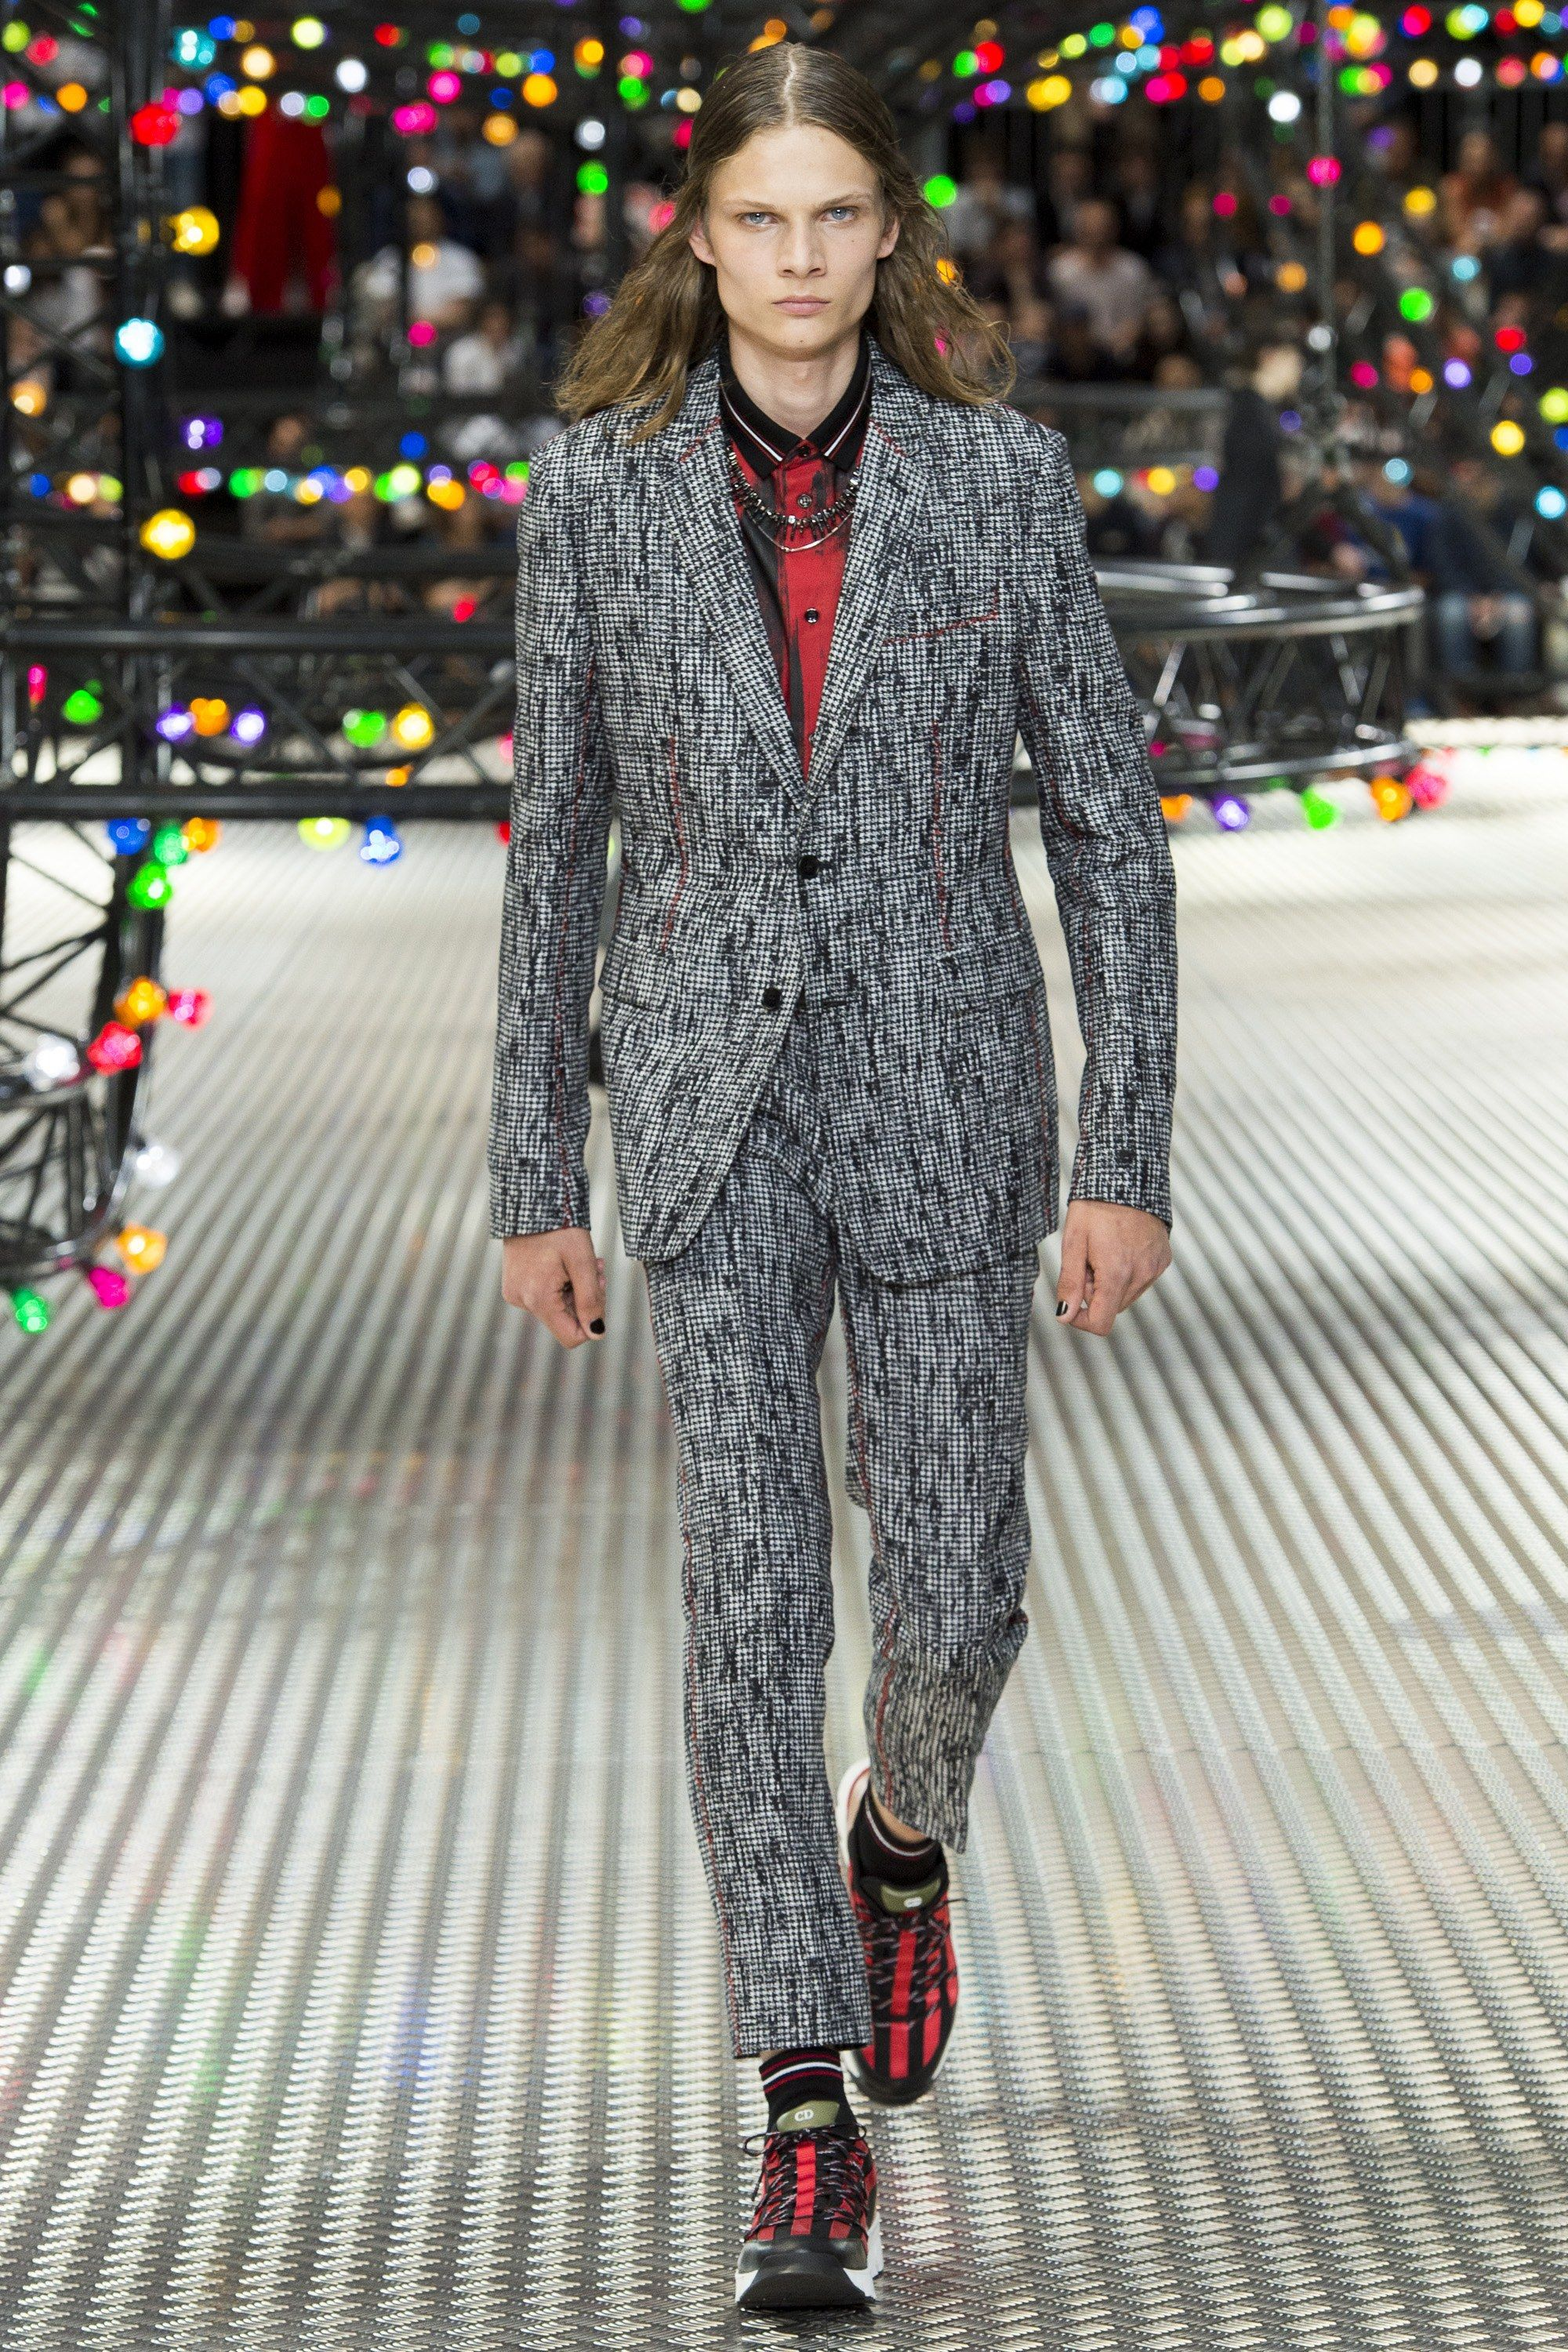 a724248d5fa7 Dior Homme Spring 2017 Menswear collection. Awesome fabric on this updated  suit.